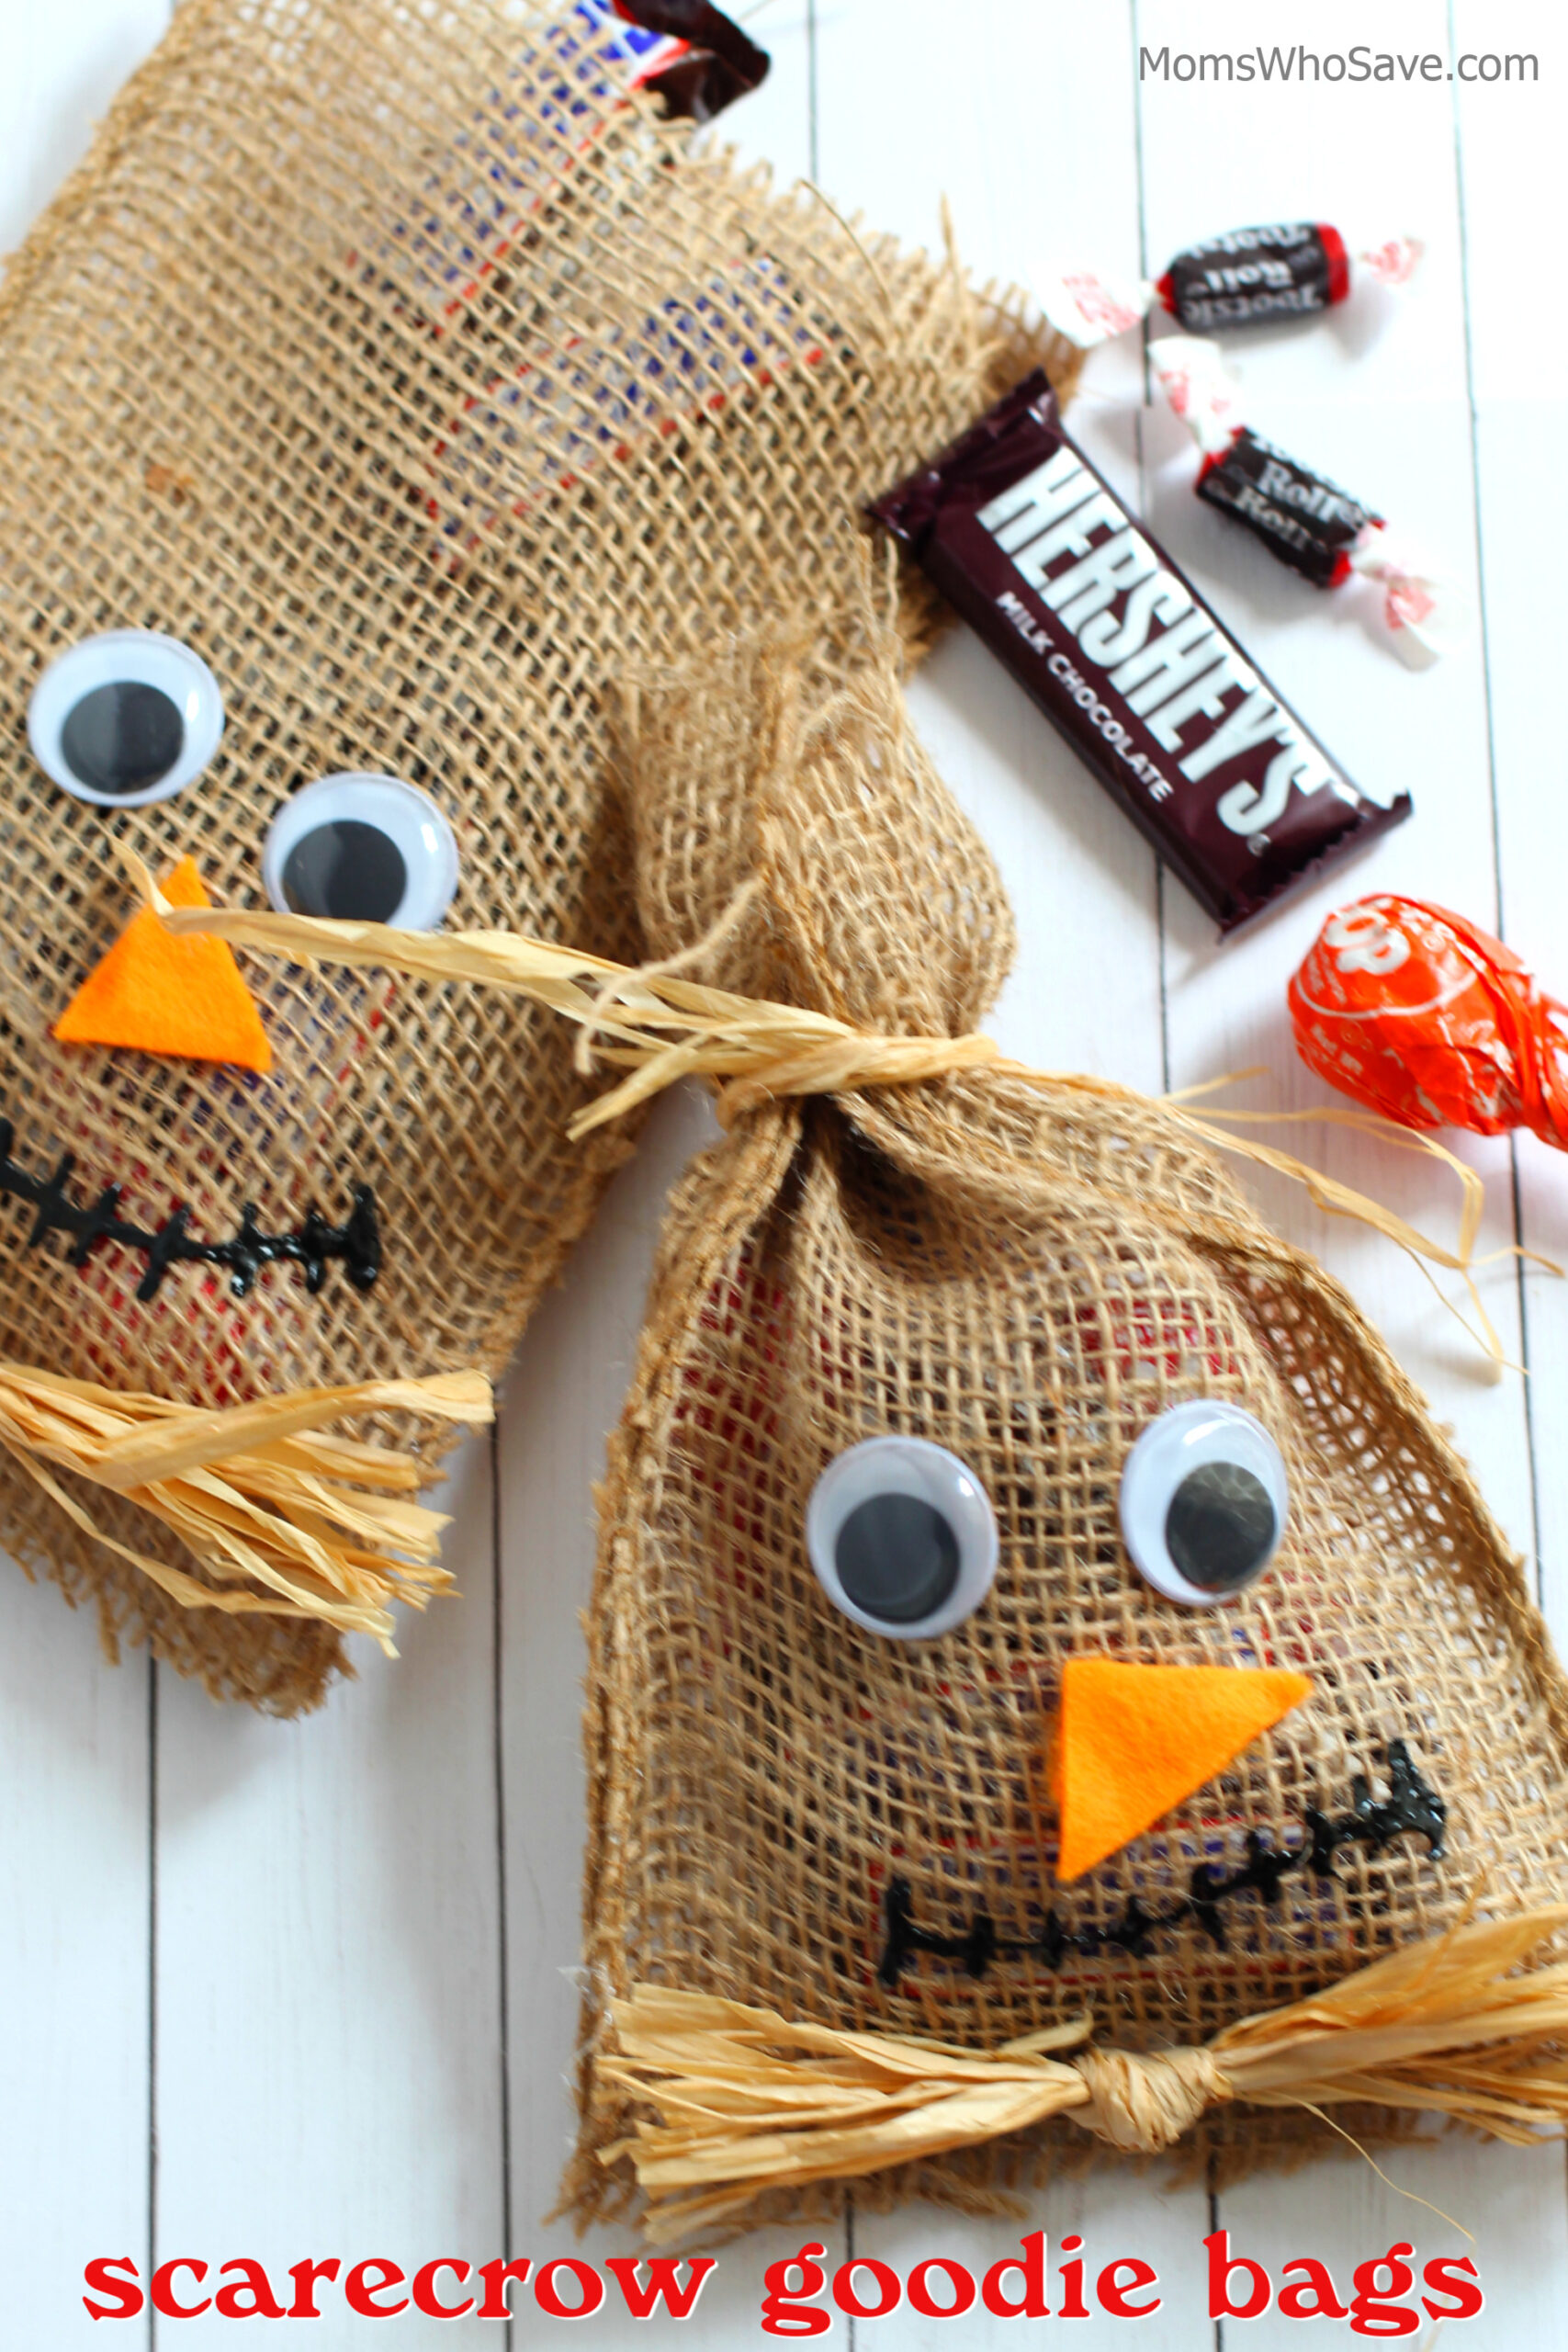 scarecrow goodie bags